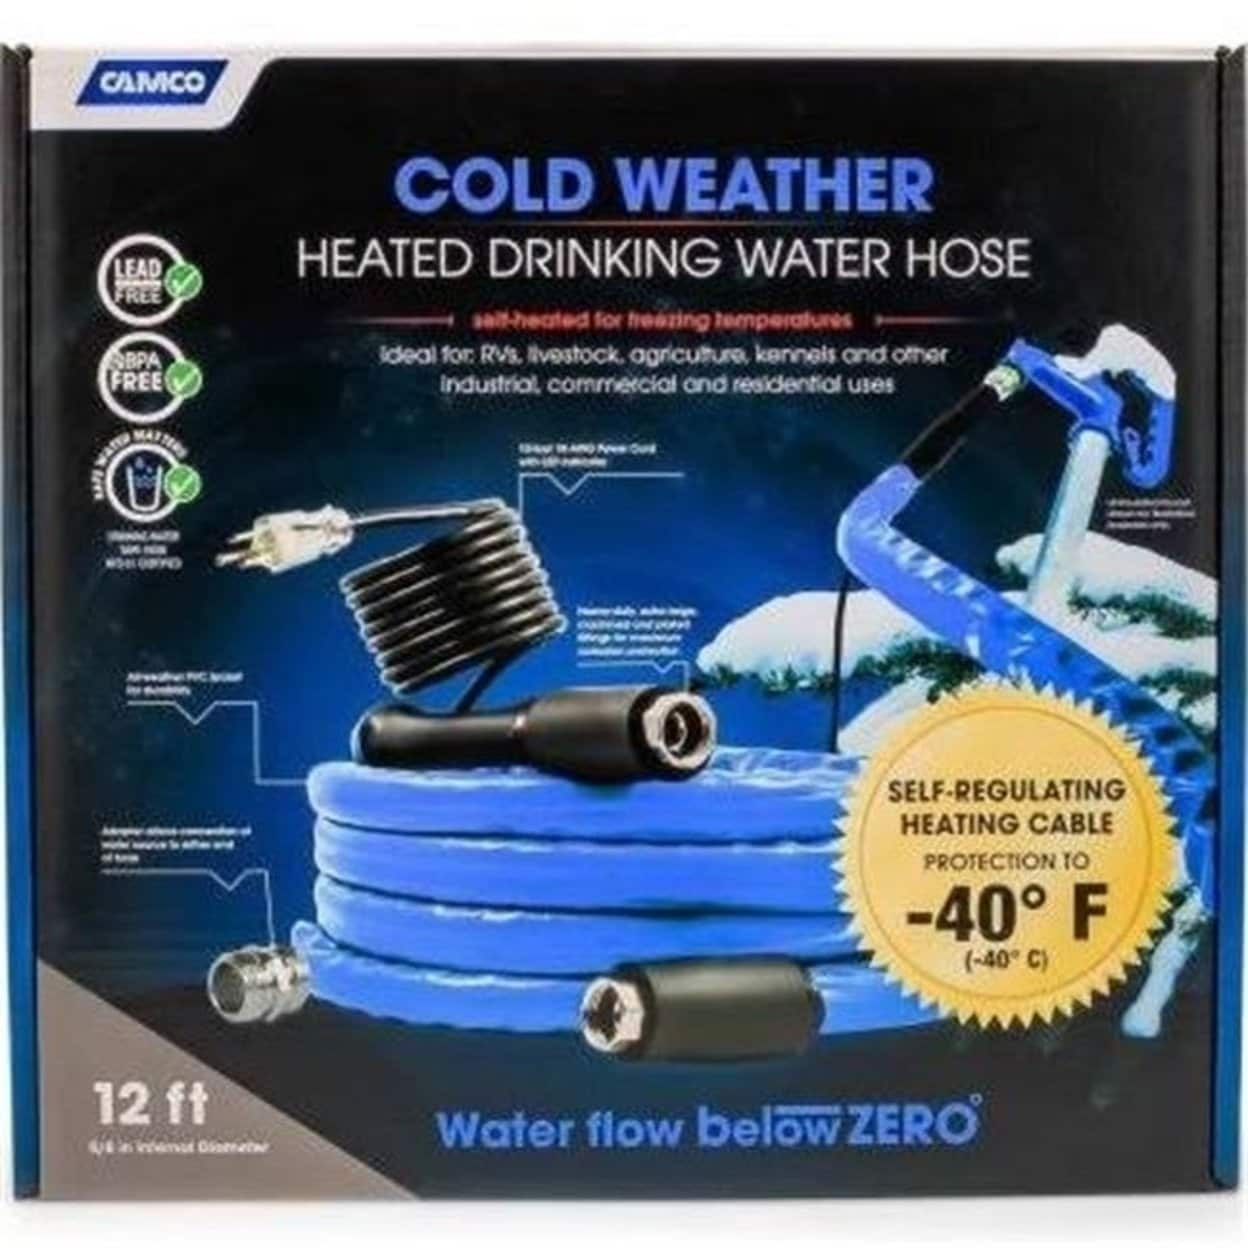 Shop Camco C1w 22922 Cold Weather Heated Drinking Water Hose Overstock 27650990